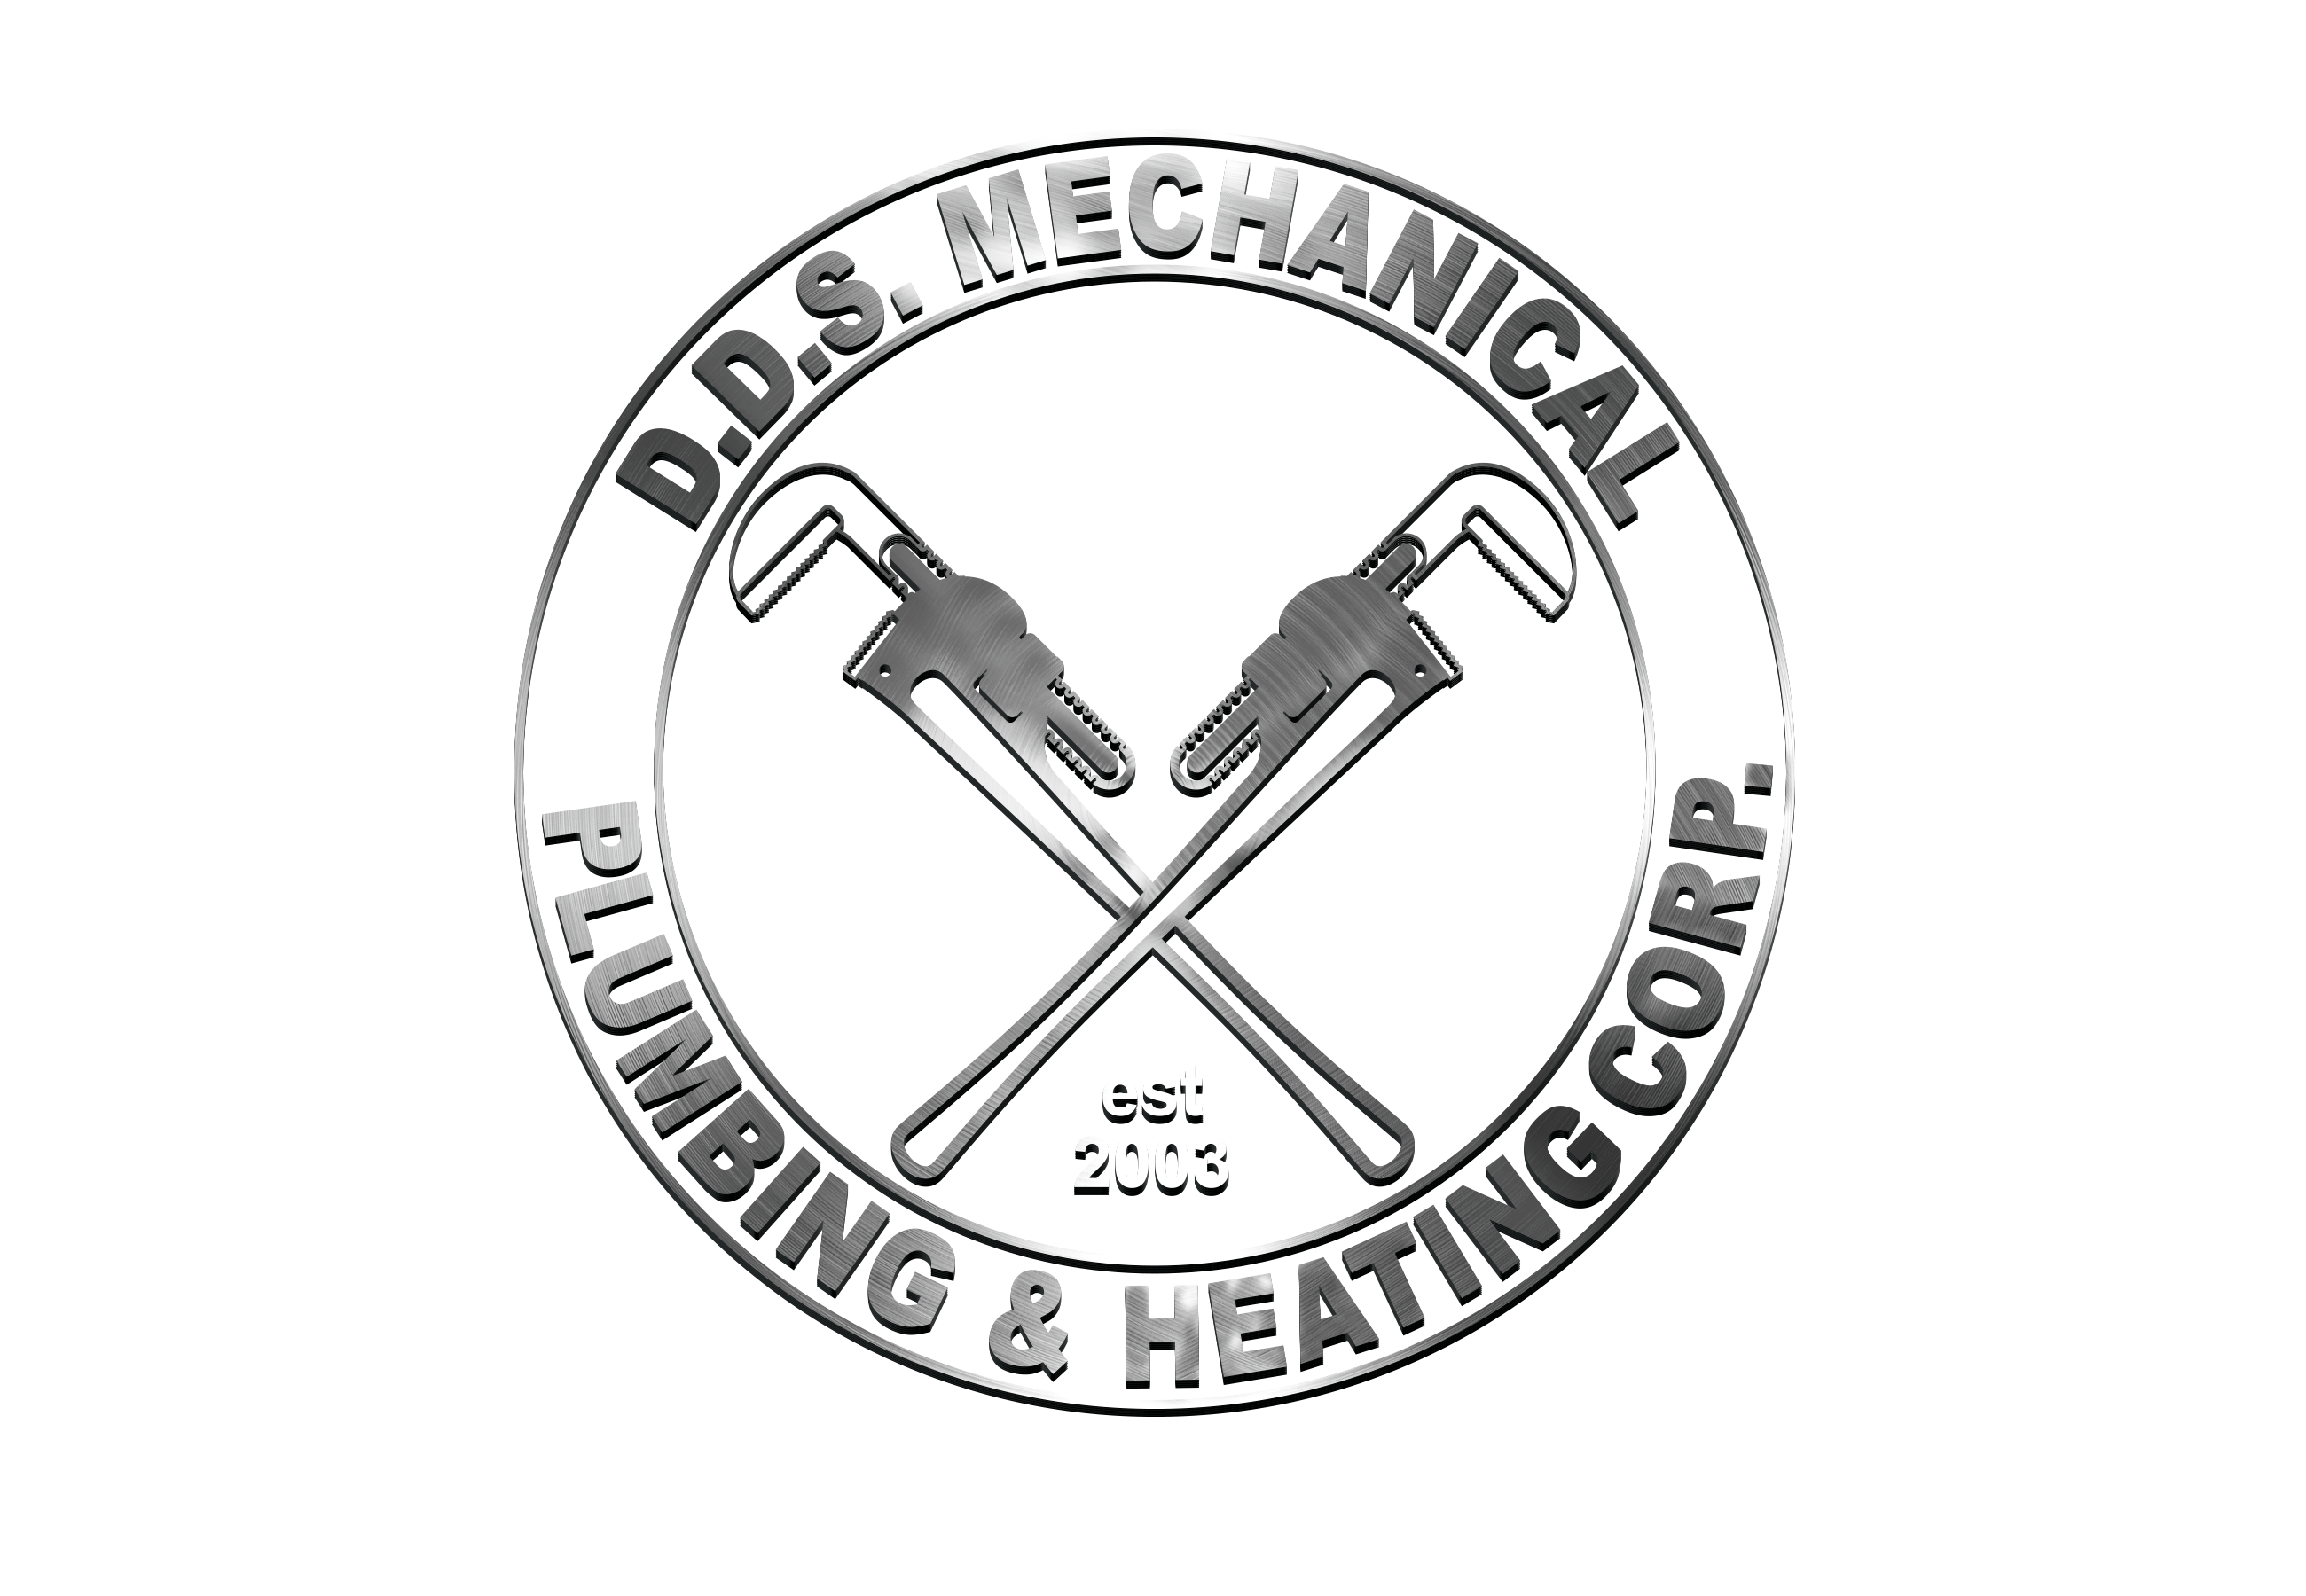 DDS Mechanical Plumbing & Heating Corp.